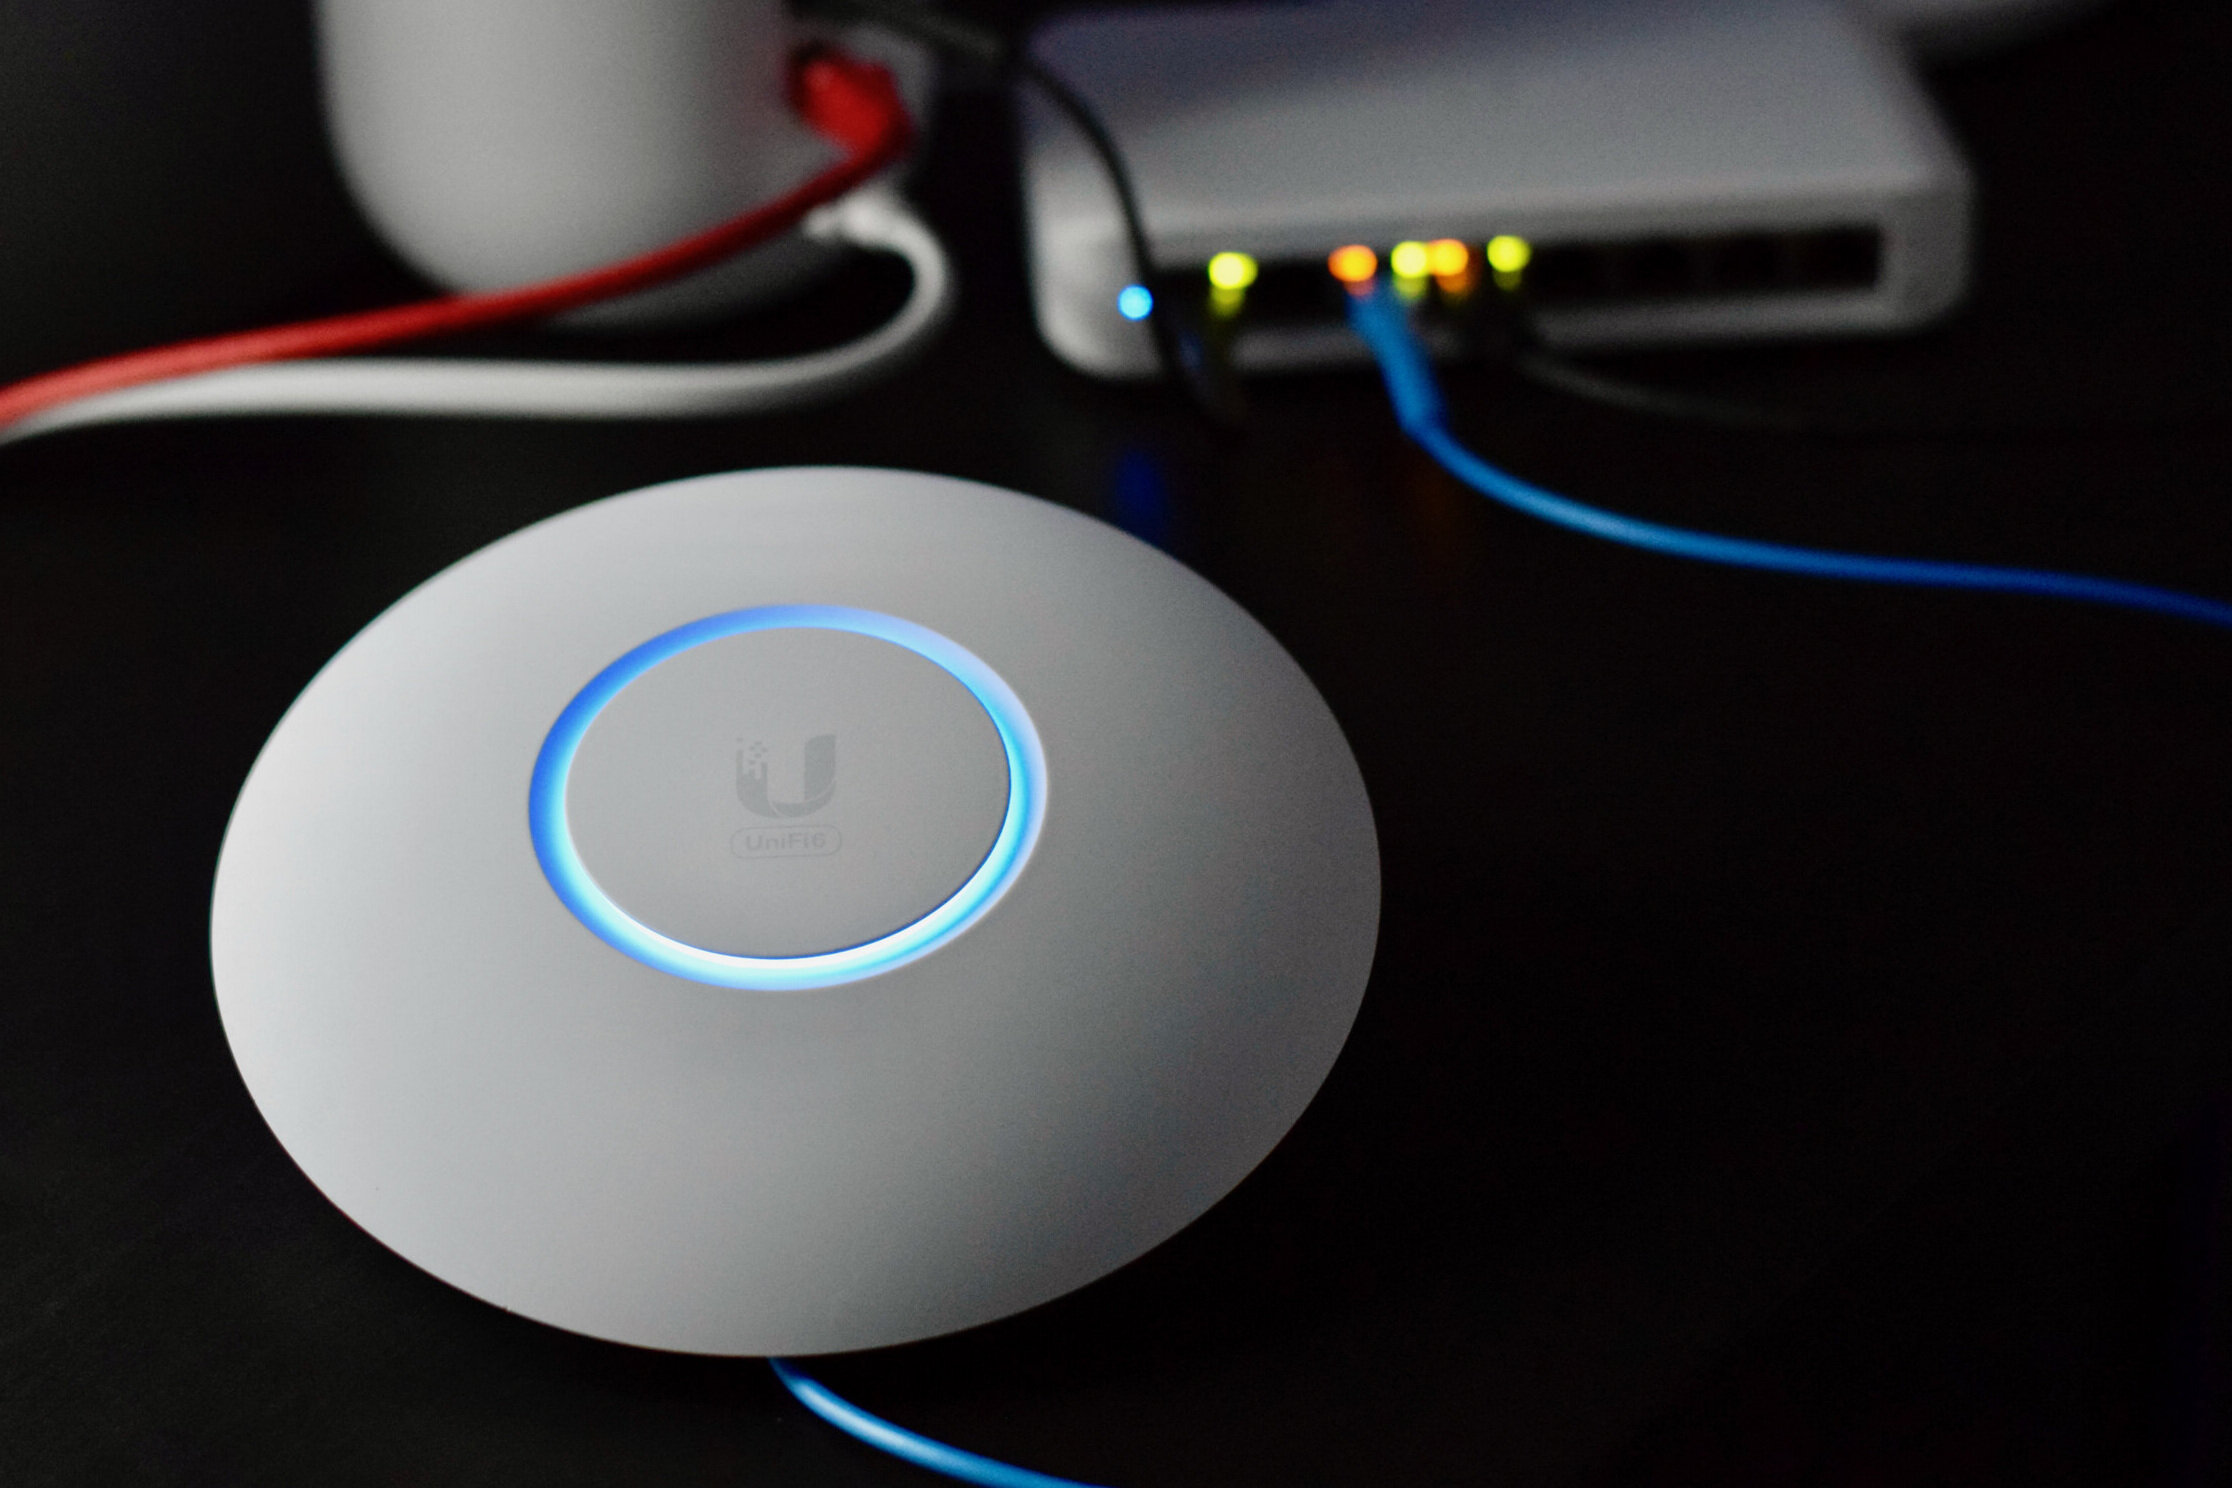 UniFi 6 Lite In-Depth Review and Speed Comparison